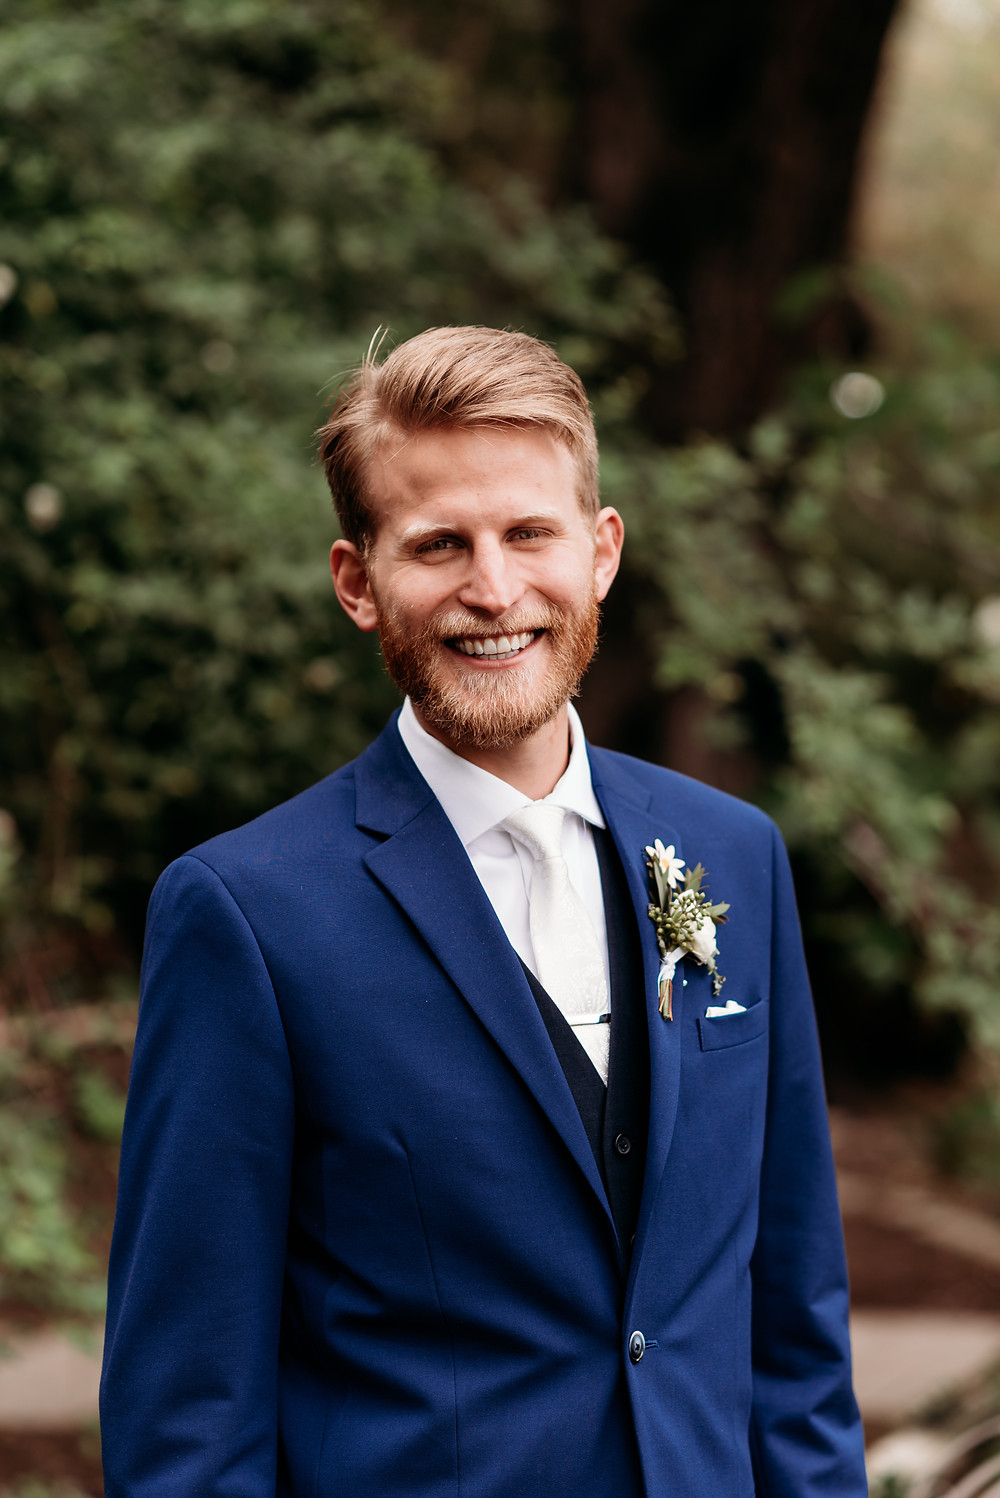 groom looking at camera in a navy suit and white tie